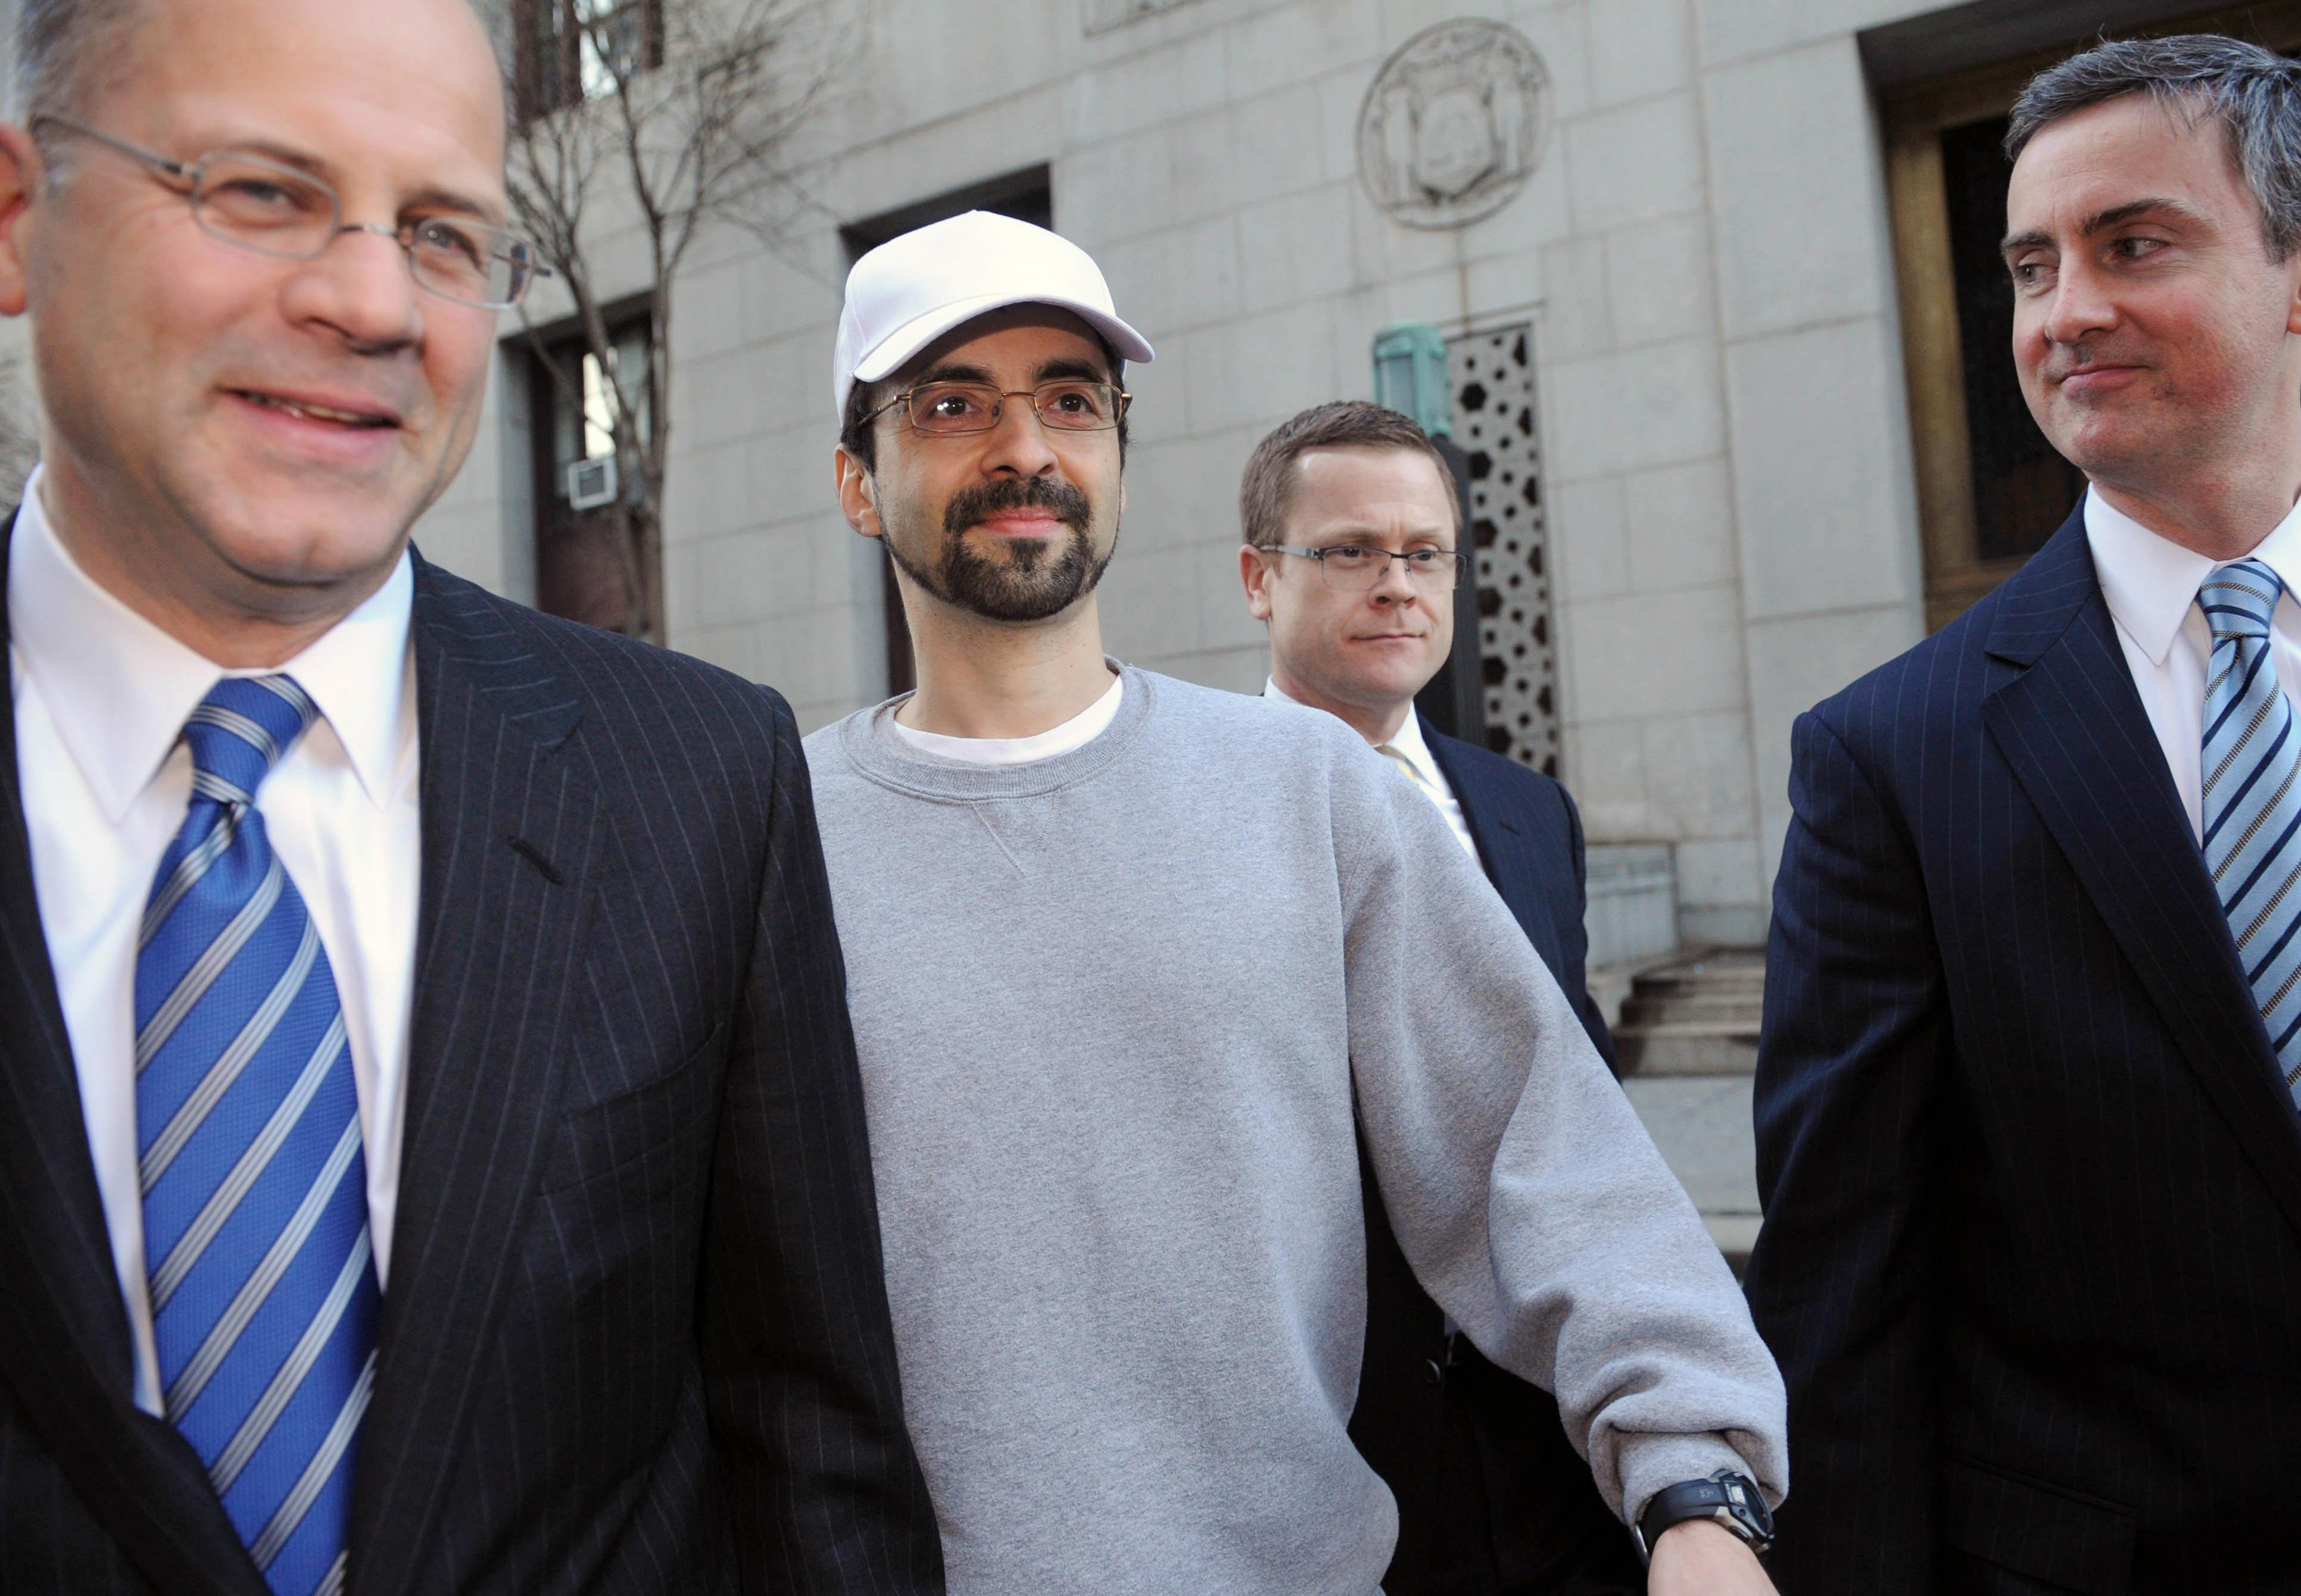 Once cleared, ex-Goldman Sachs programmer now convicted anew